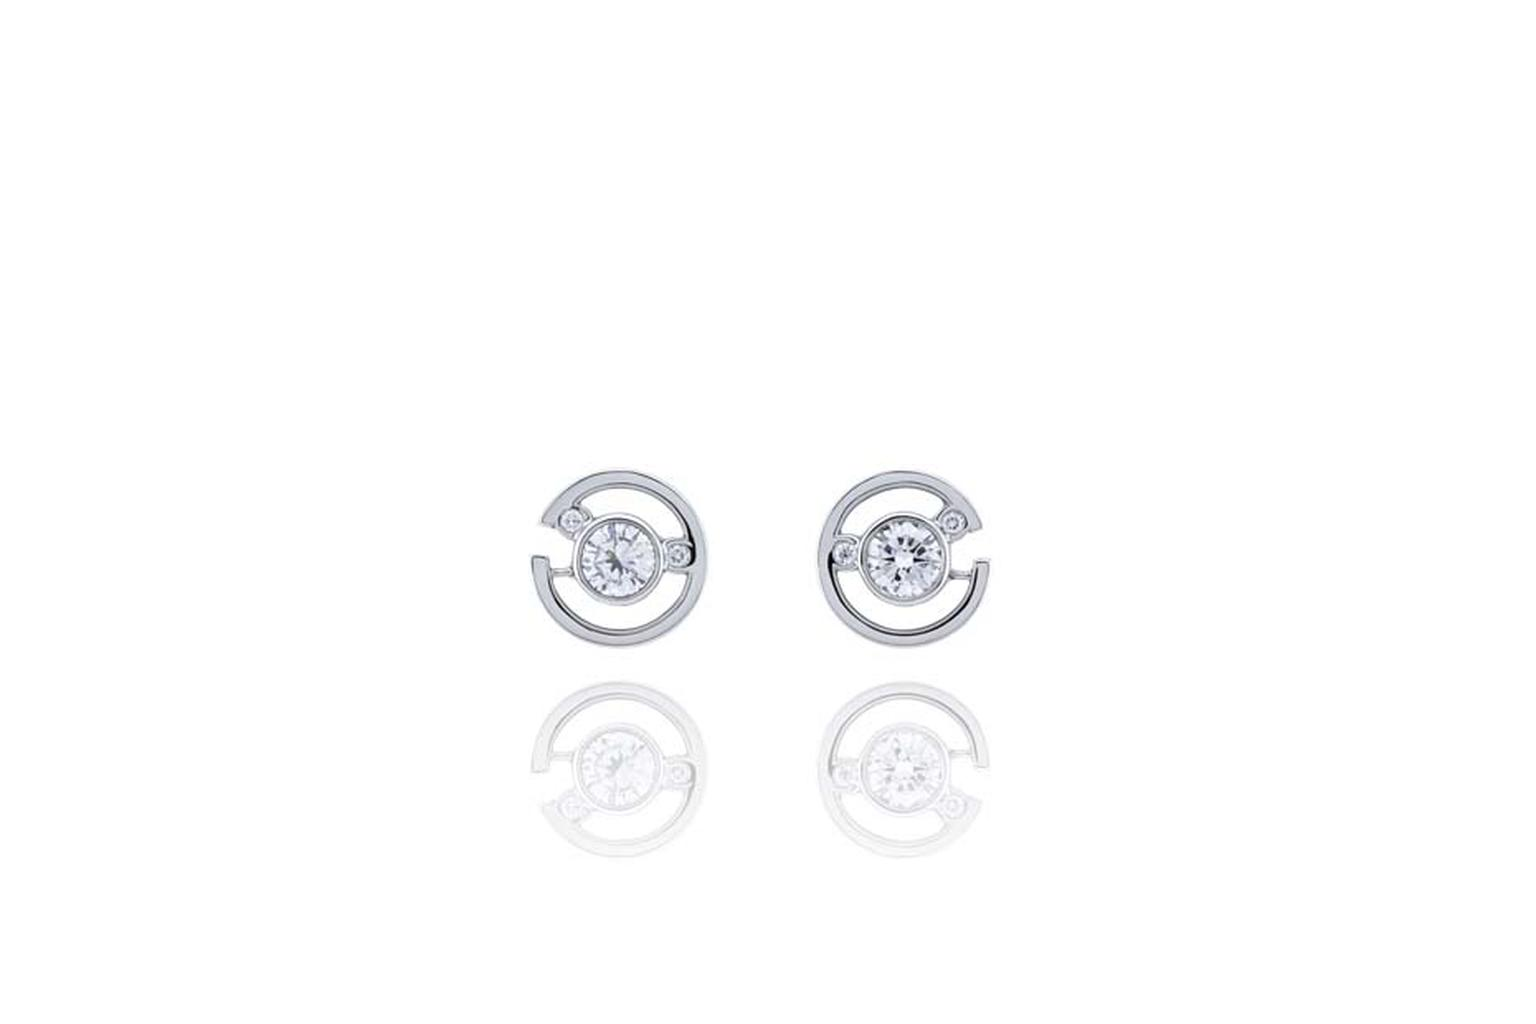 Boodles Maze collection diamond stud earrings in white gold.